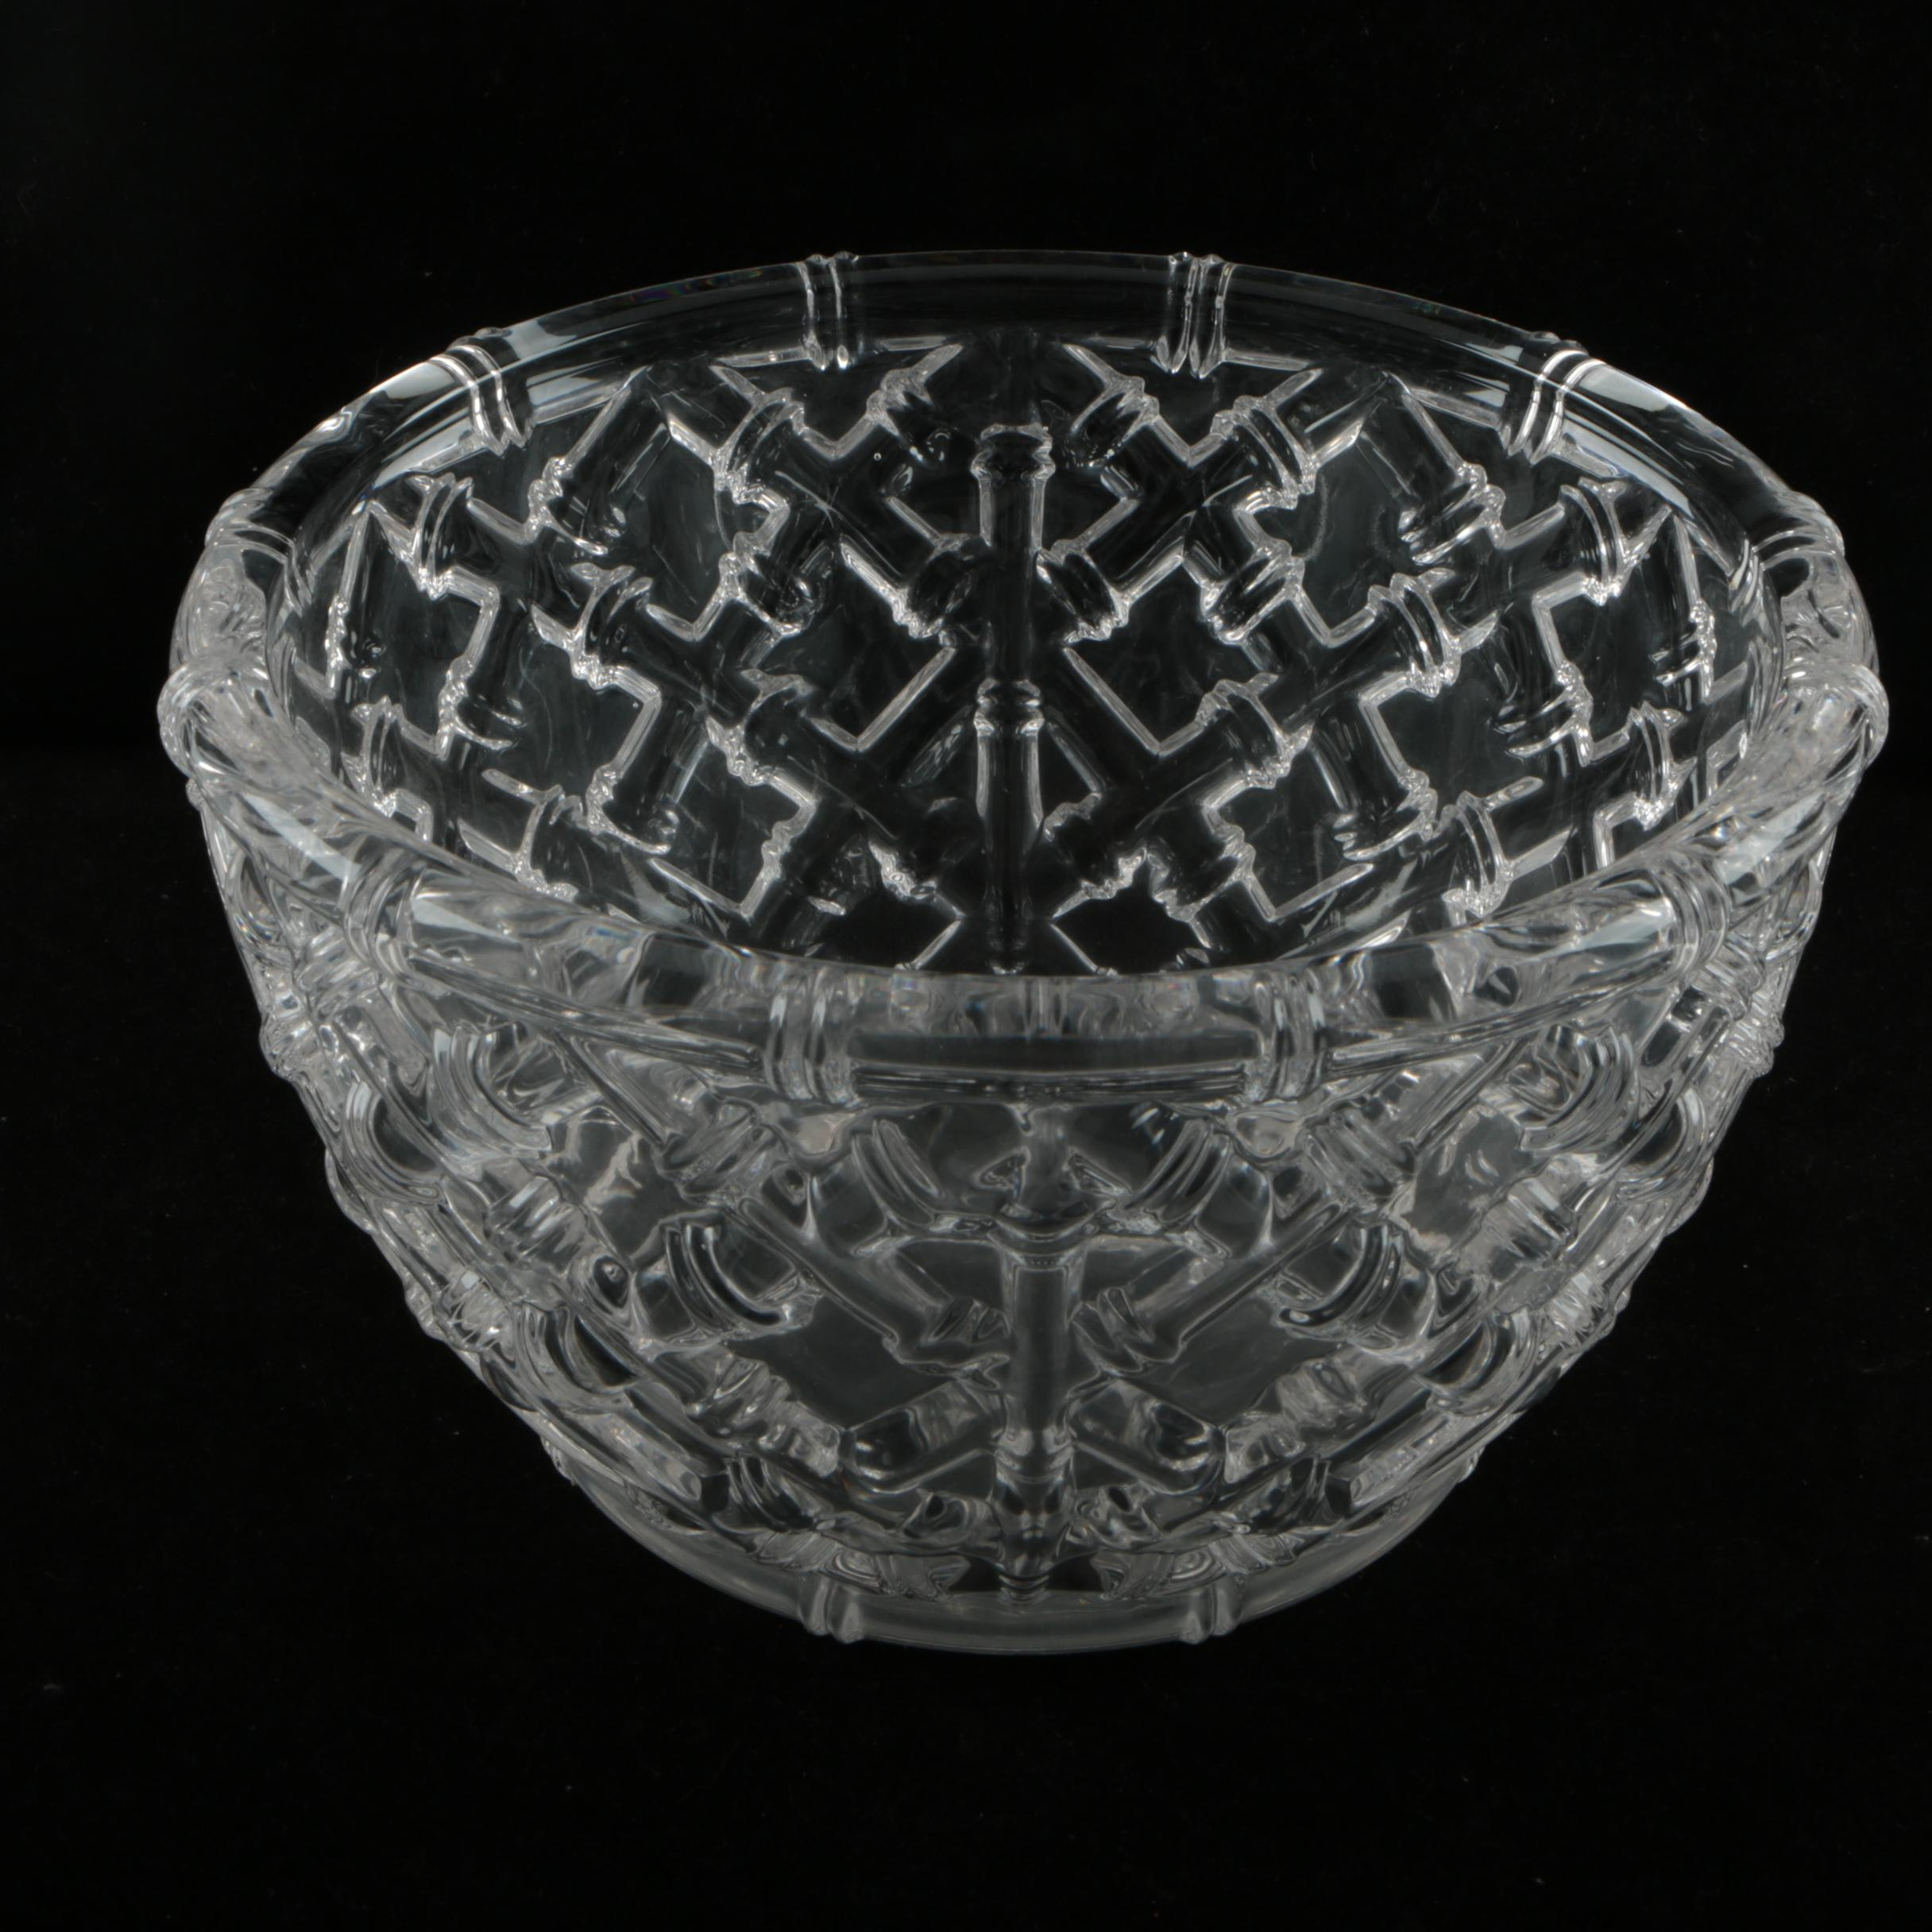 Tiffany & Co. Crystal Bamboo Bowl